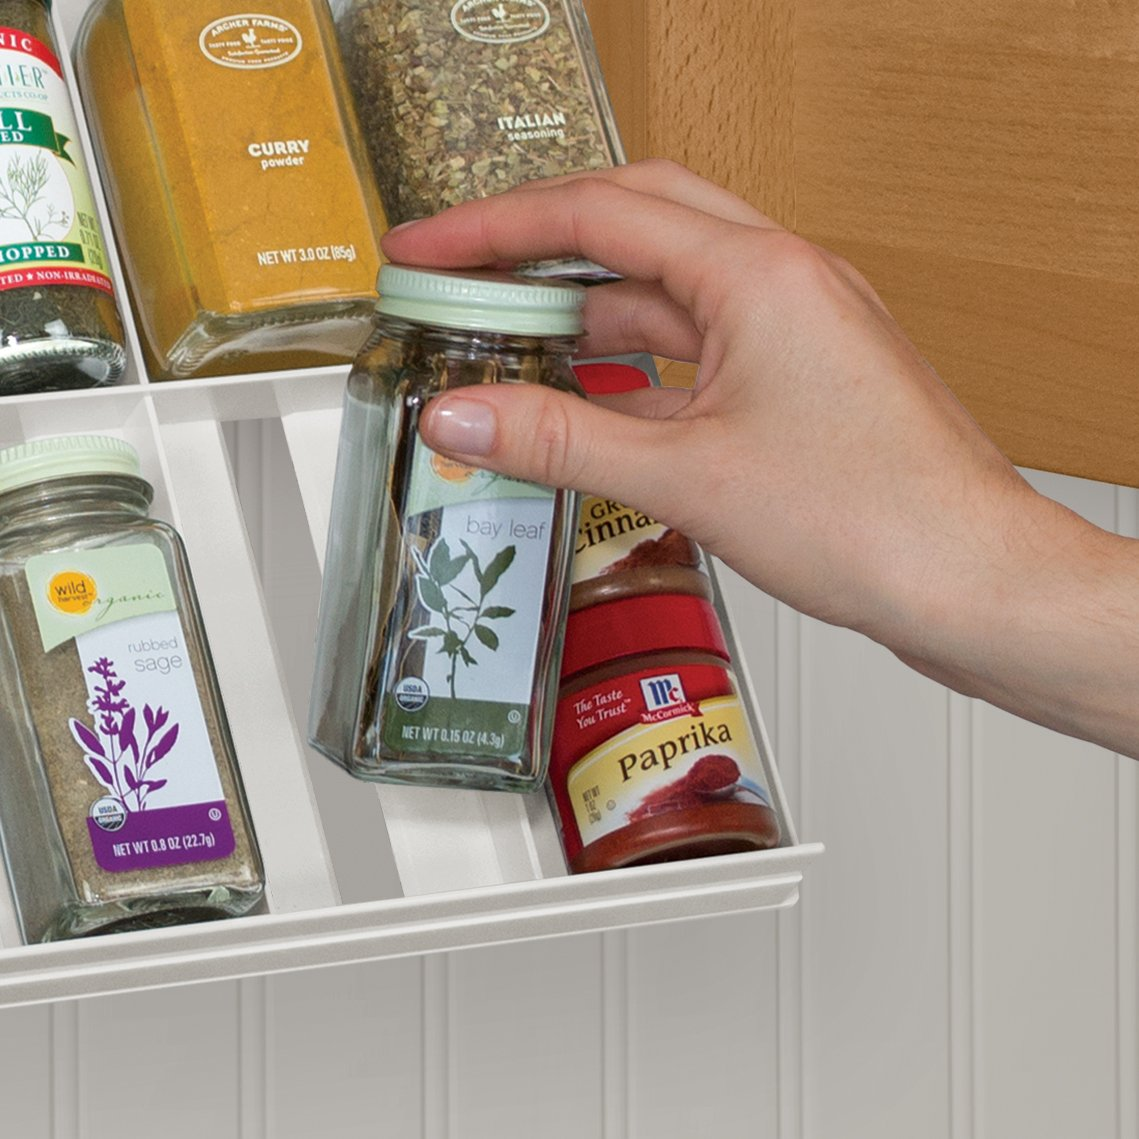 YouCopia Classic SpiceStack 24-Bottle Spice Organizer with Universal Drawers, White by YouCopia (Image #3)